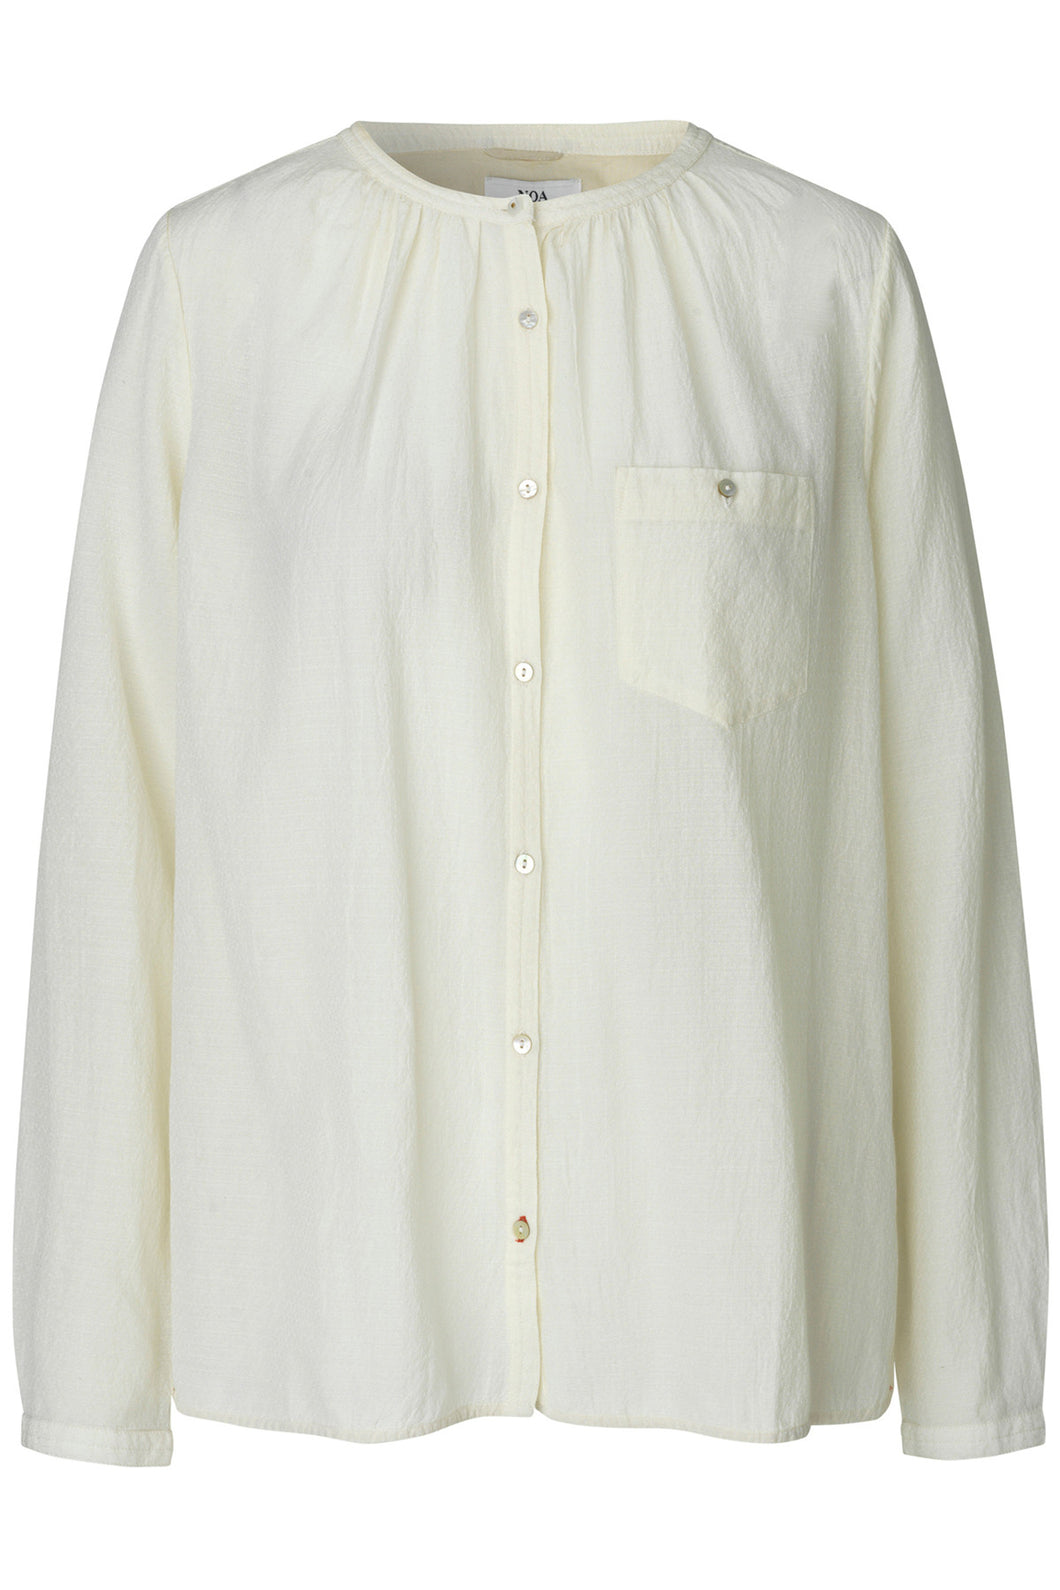 Dobby Sheer Blouse - Bone White